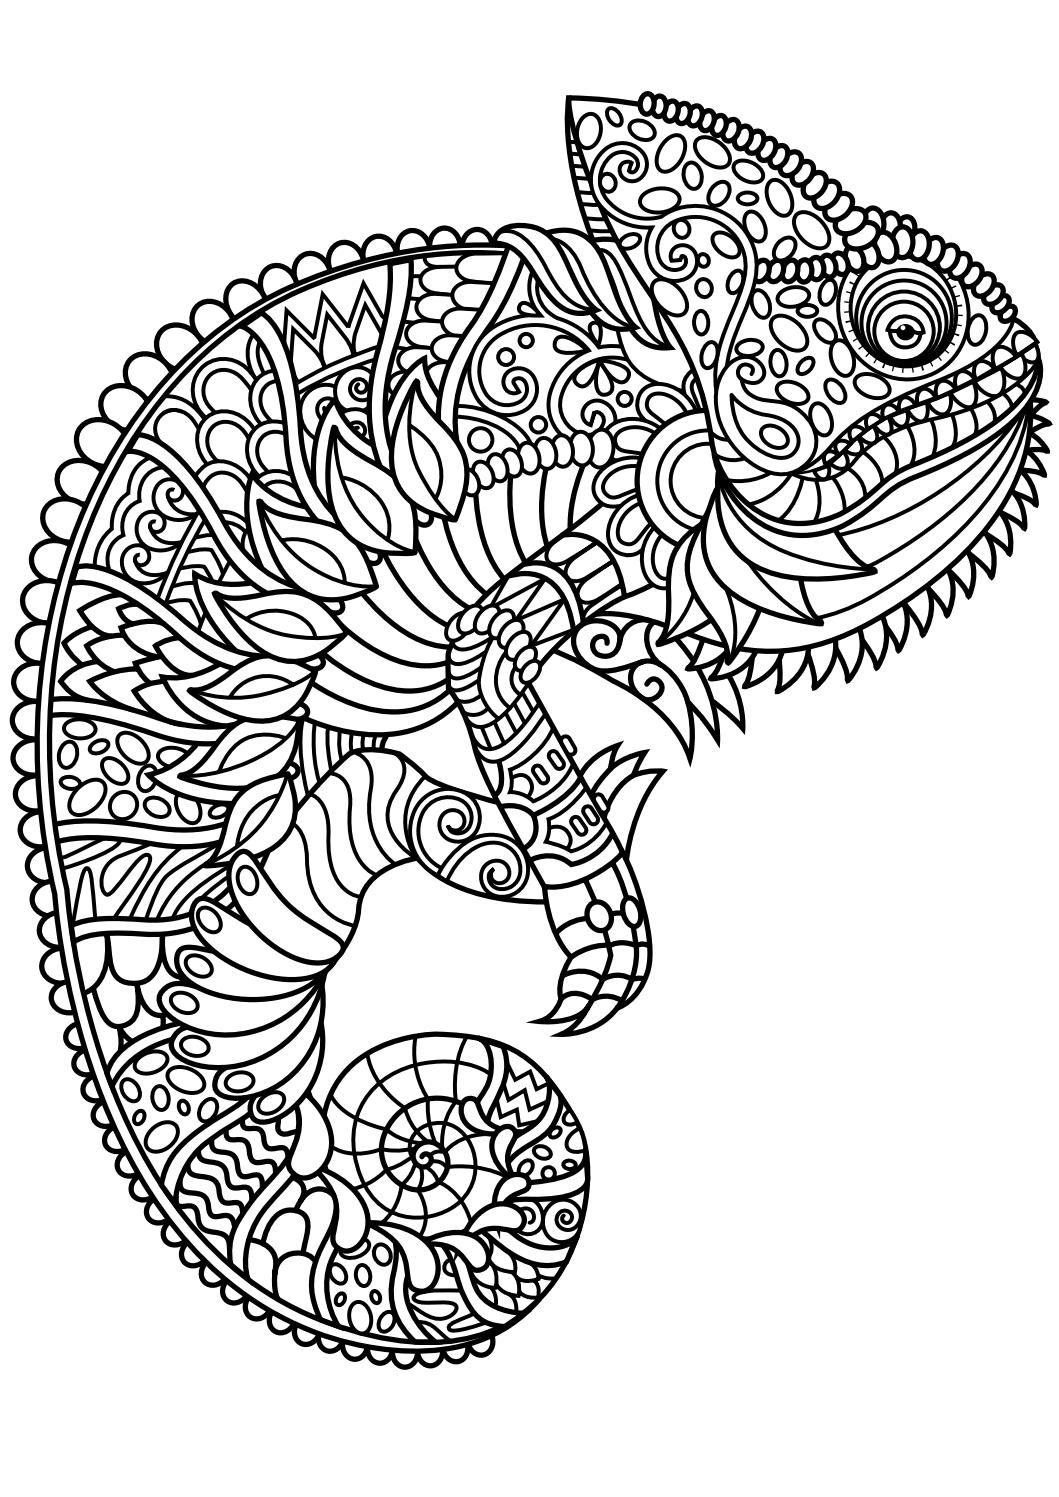 Animal coloring pages pdf | Pinterest | Adult coloring, Dog cat and ...